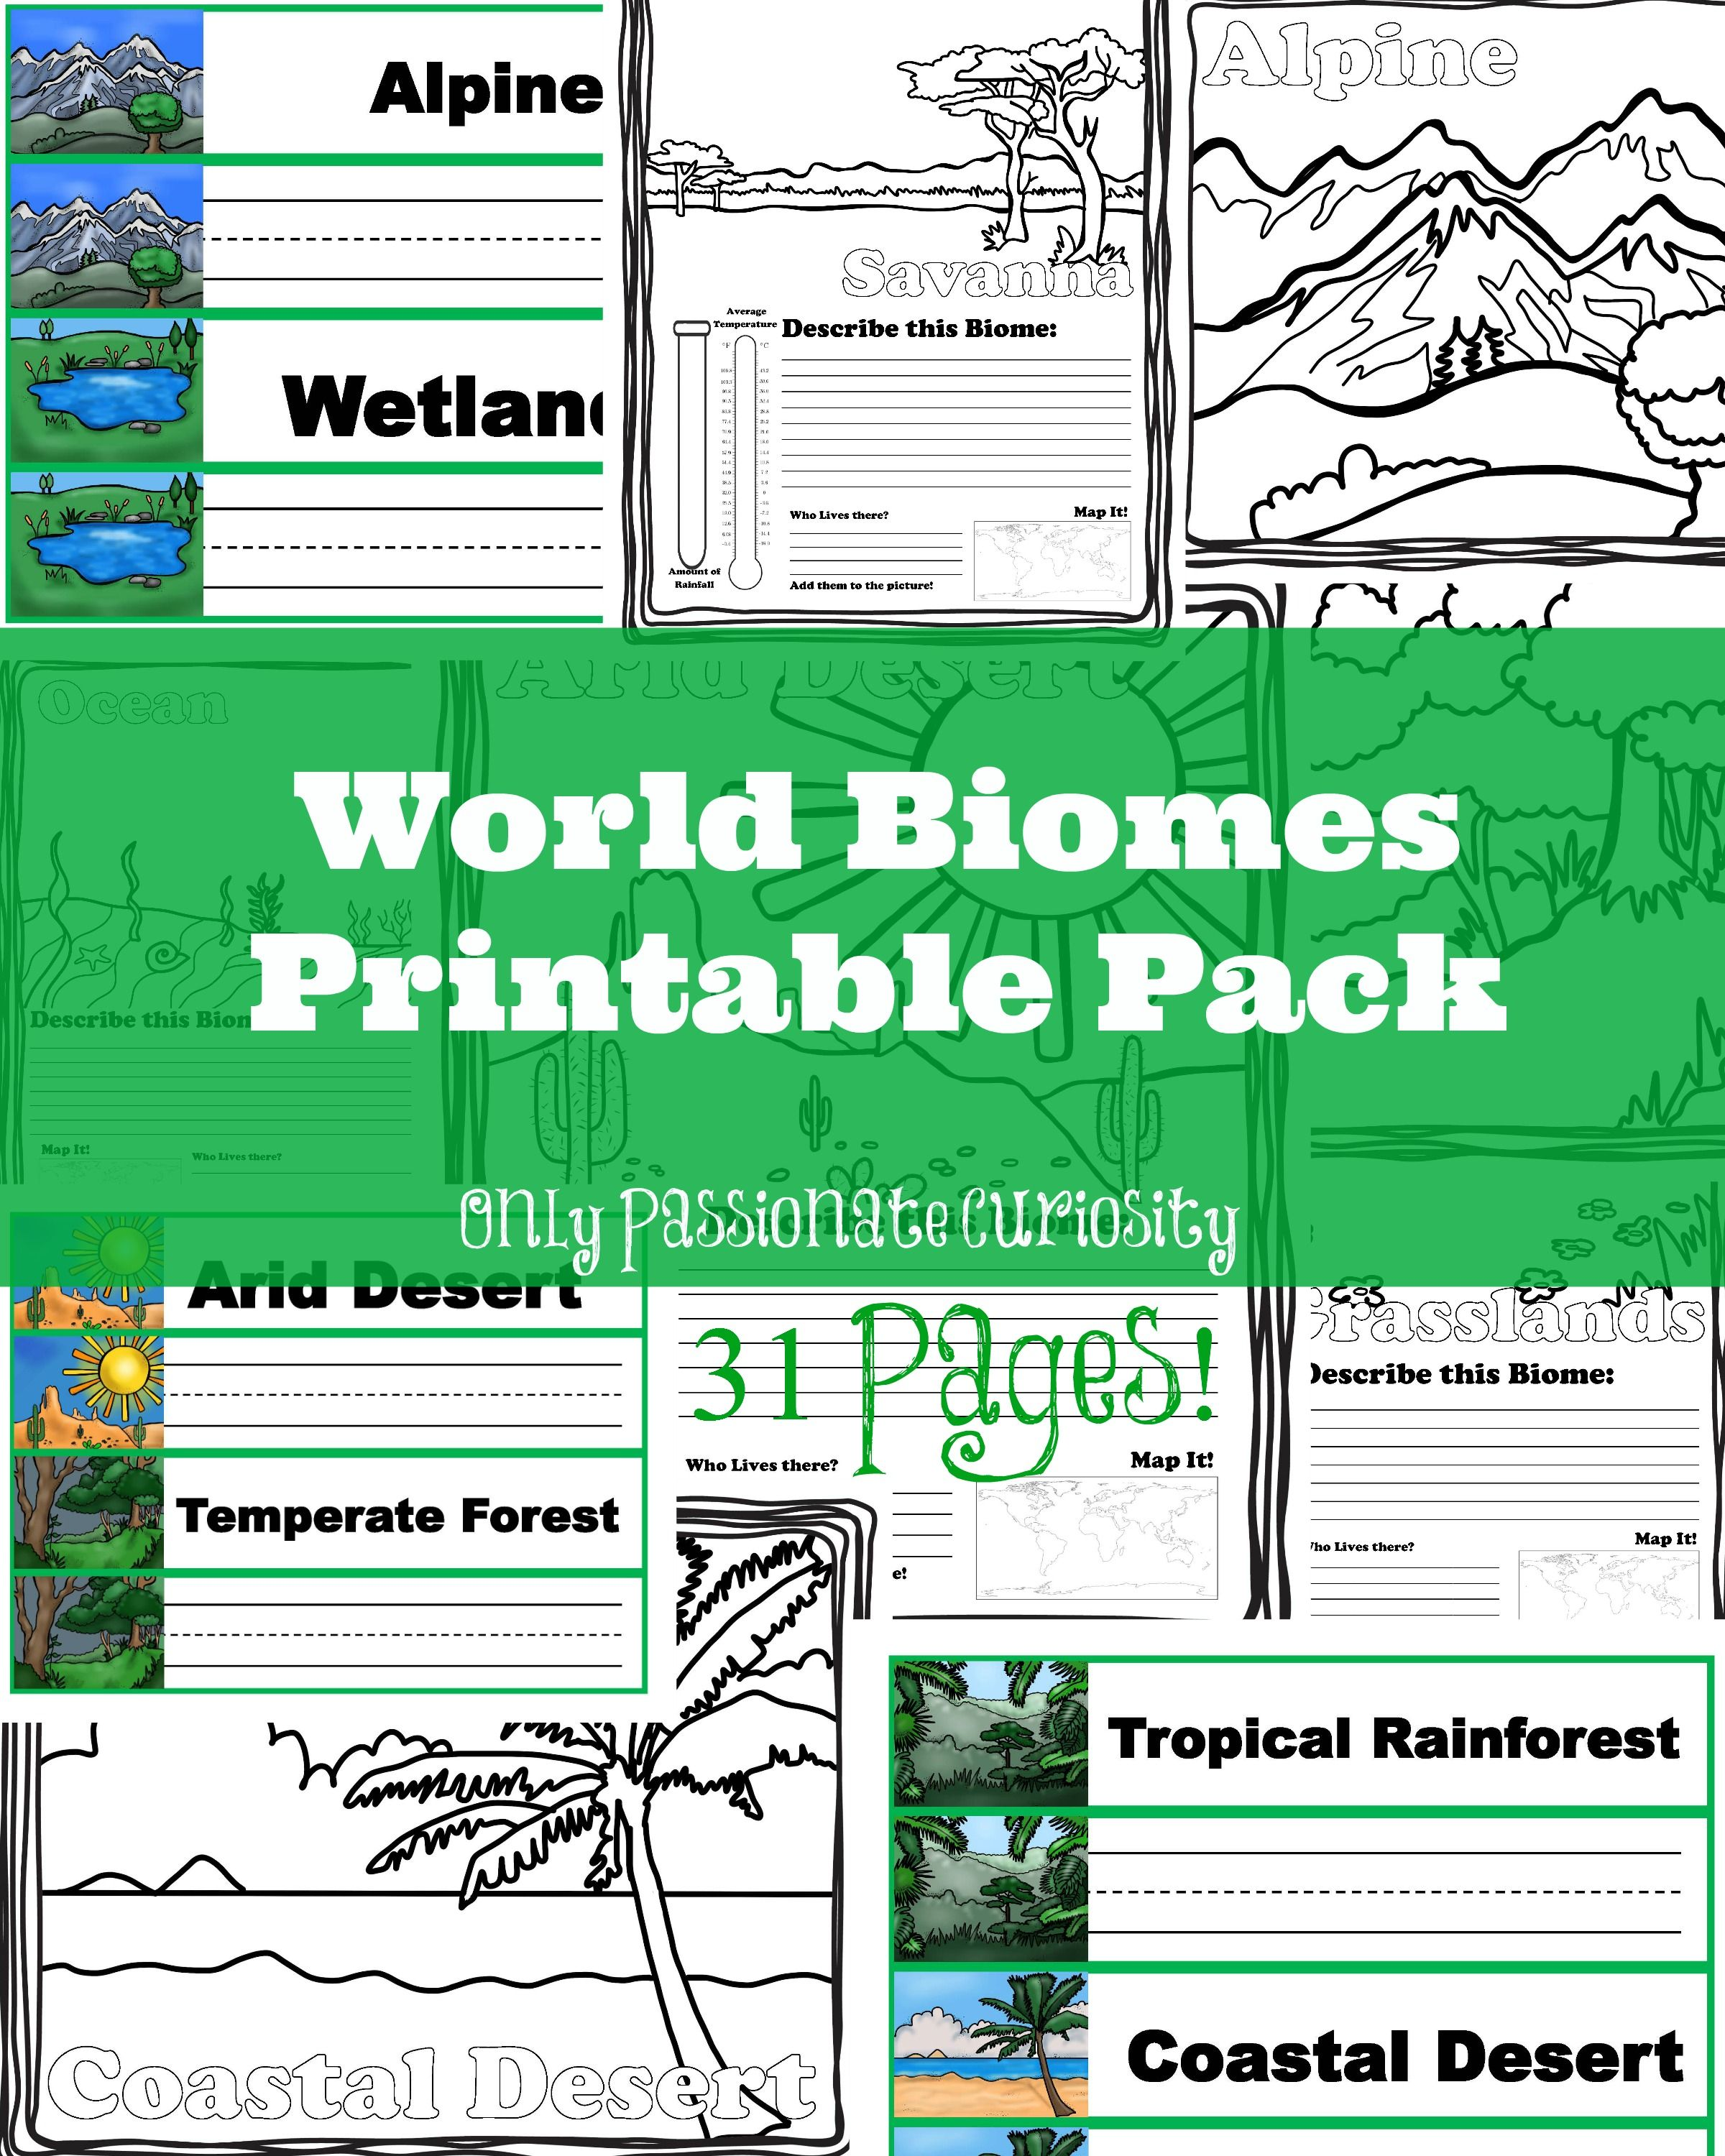 worksheet Biomes Worksheets worksheets for biomes kids worksheet printable blog 1000 images about environmental science on pinterest carbon biomes